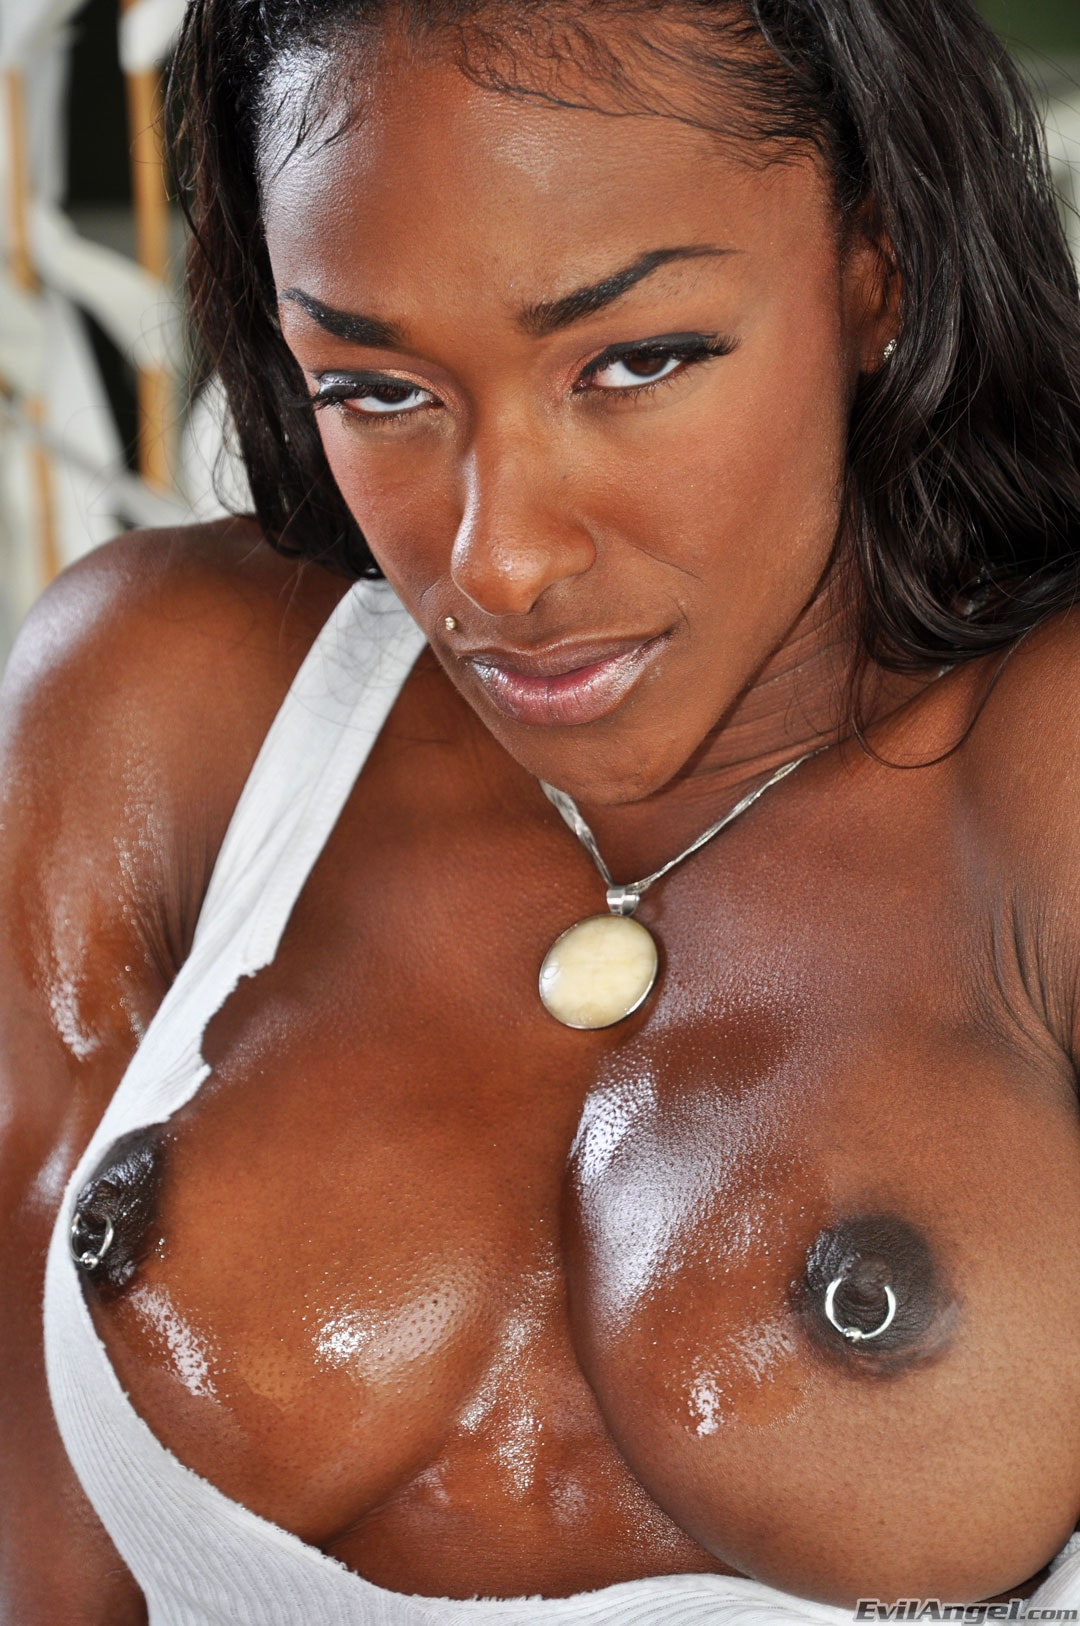 I Love Black Shemales 'Black Shemale Idol - The Auditions' starring Natalia Coxxx (Photo 8)